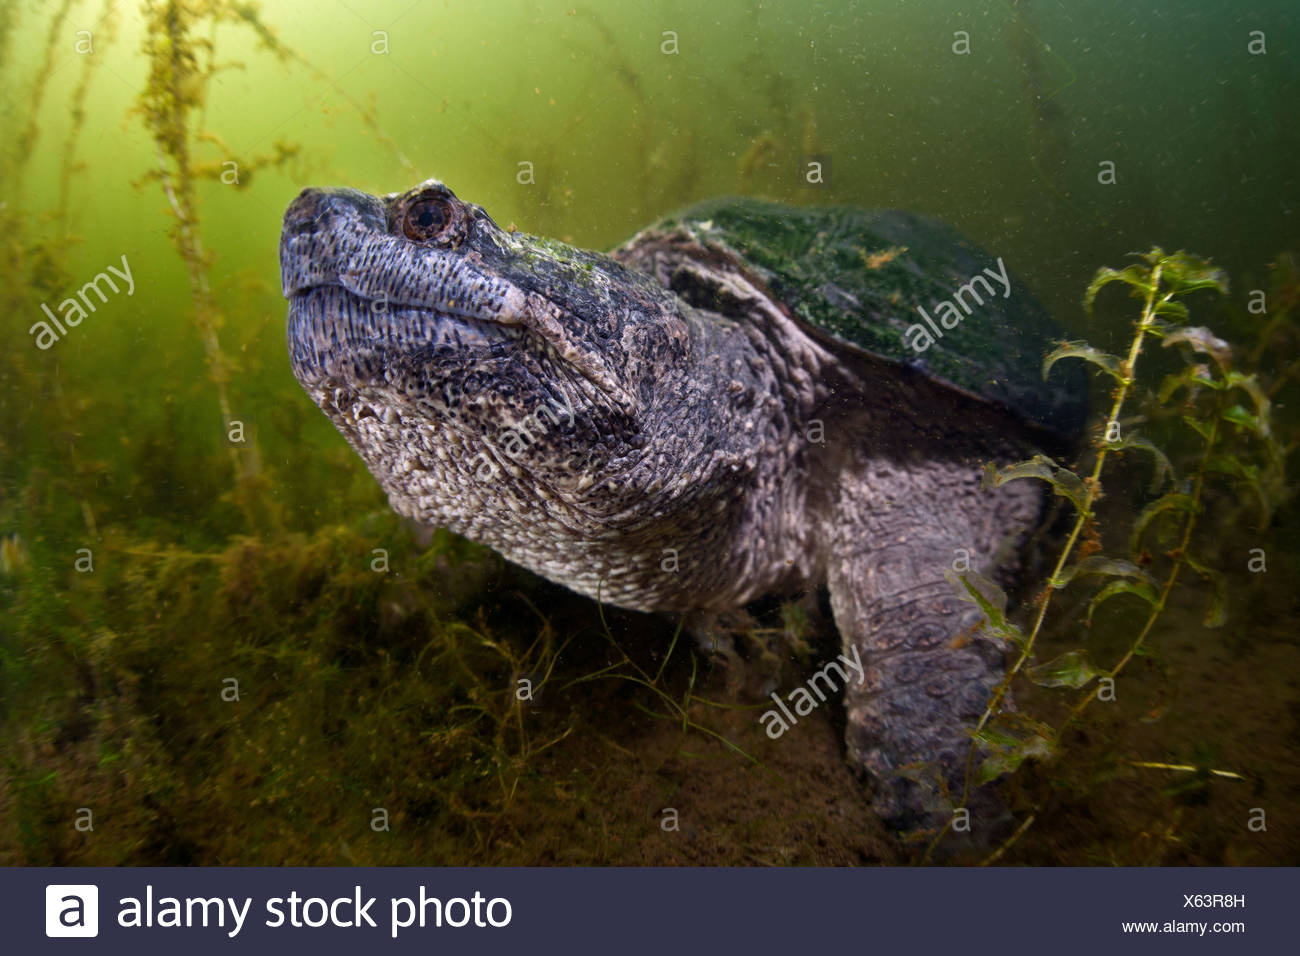 Common Snapping Turtle, Chelydra serpentina, Massachusetts, Cape Cod, USA Stock Photo